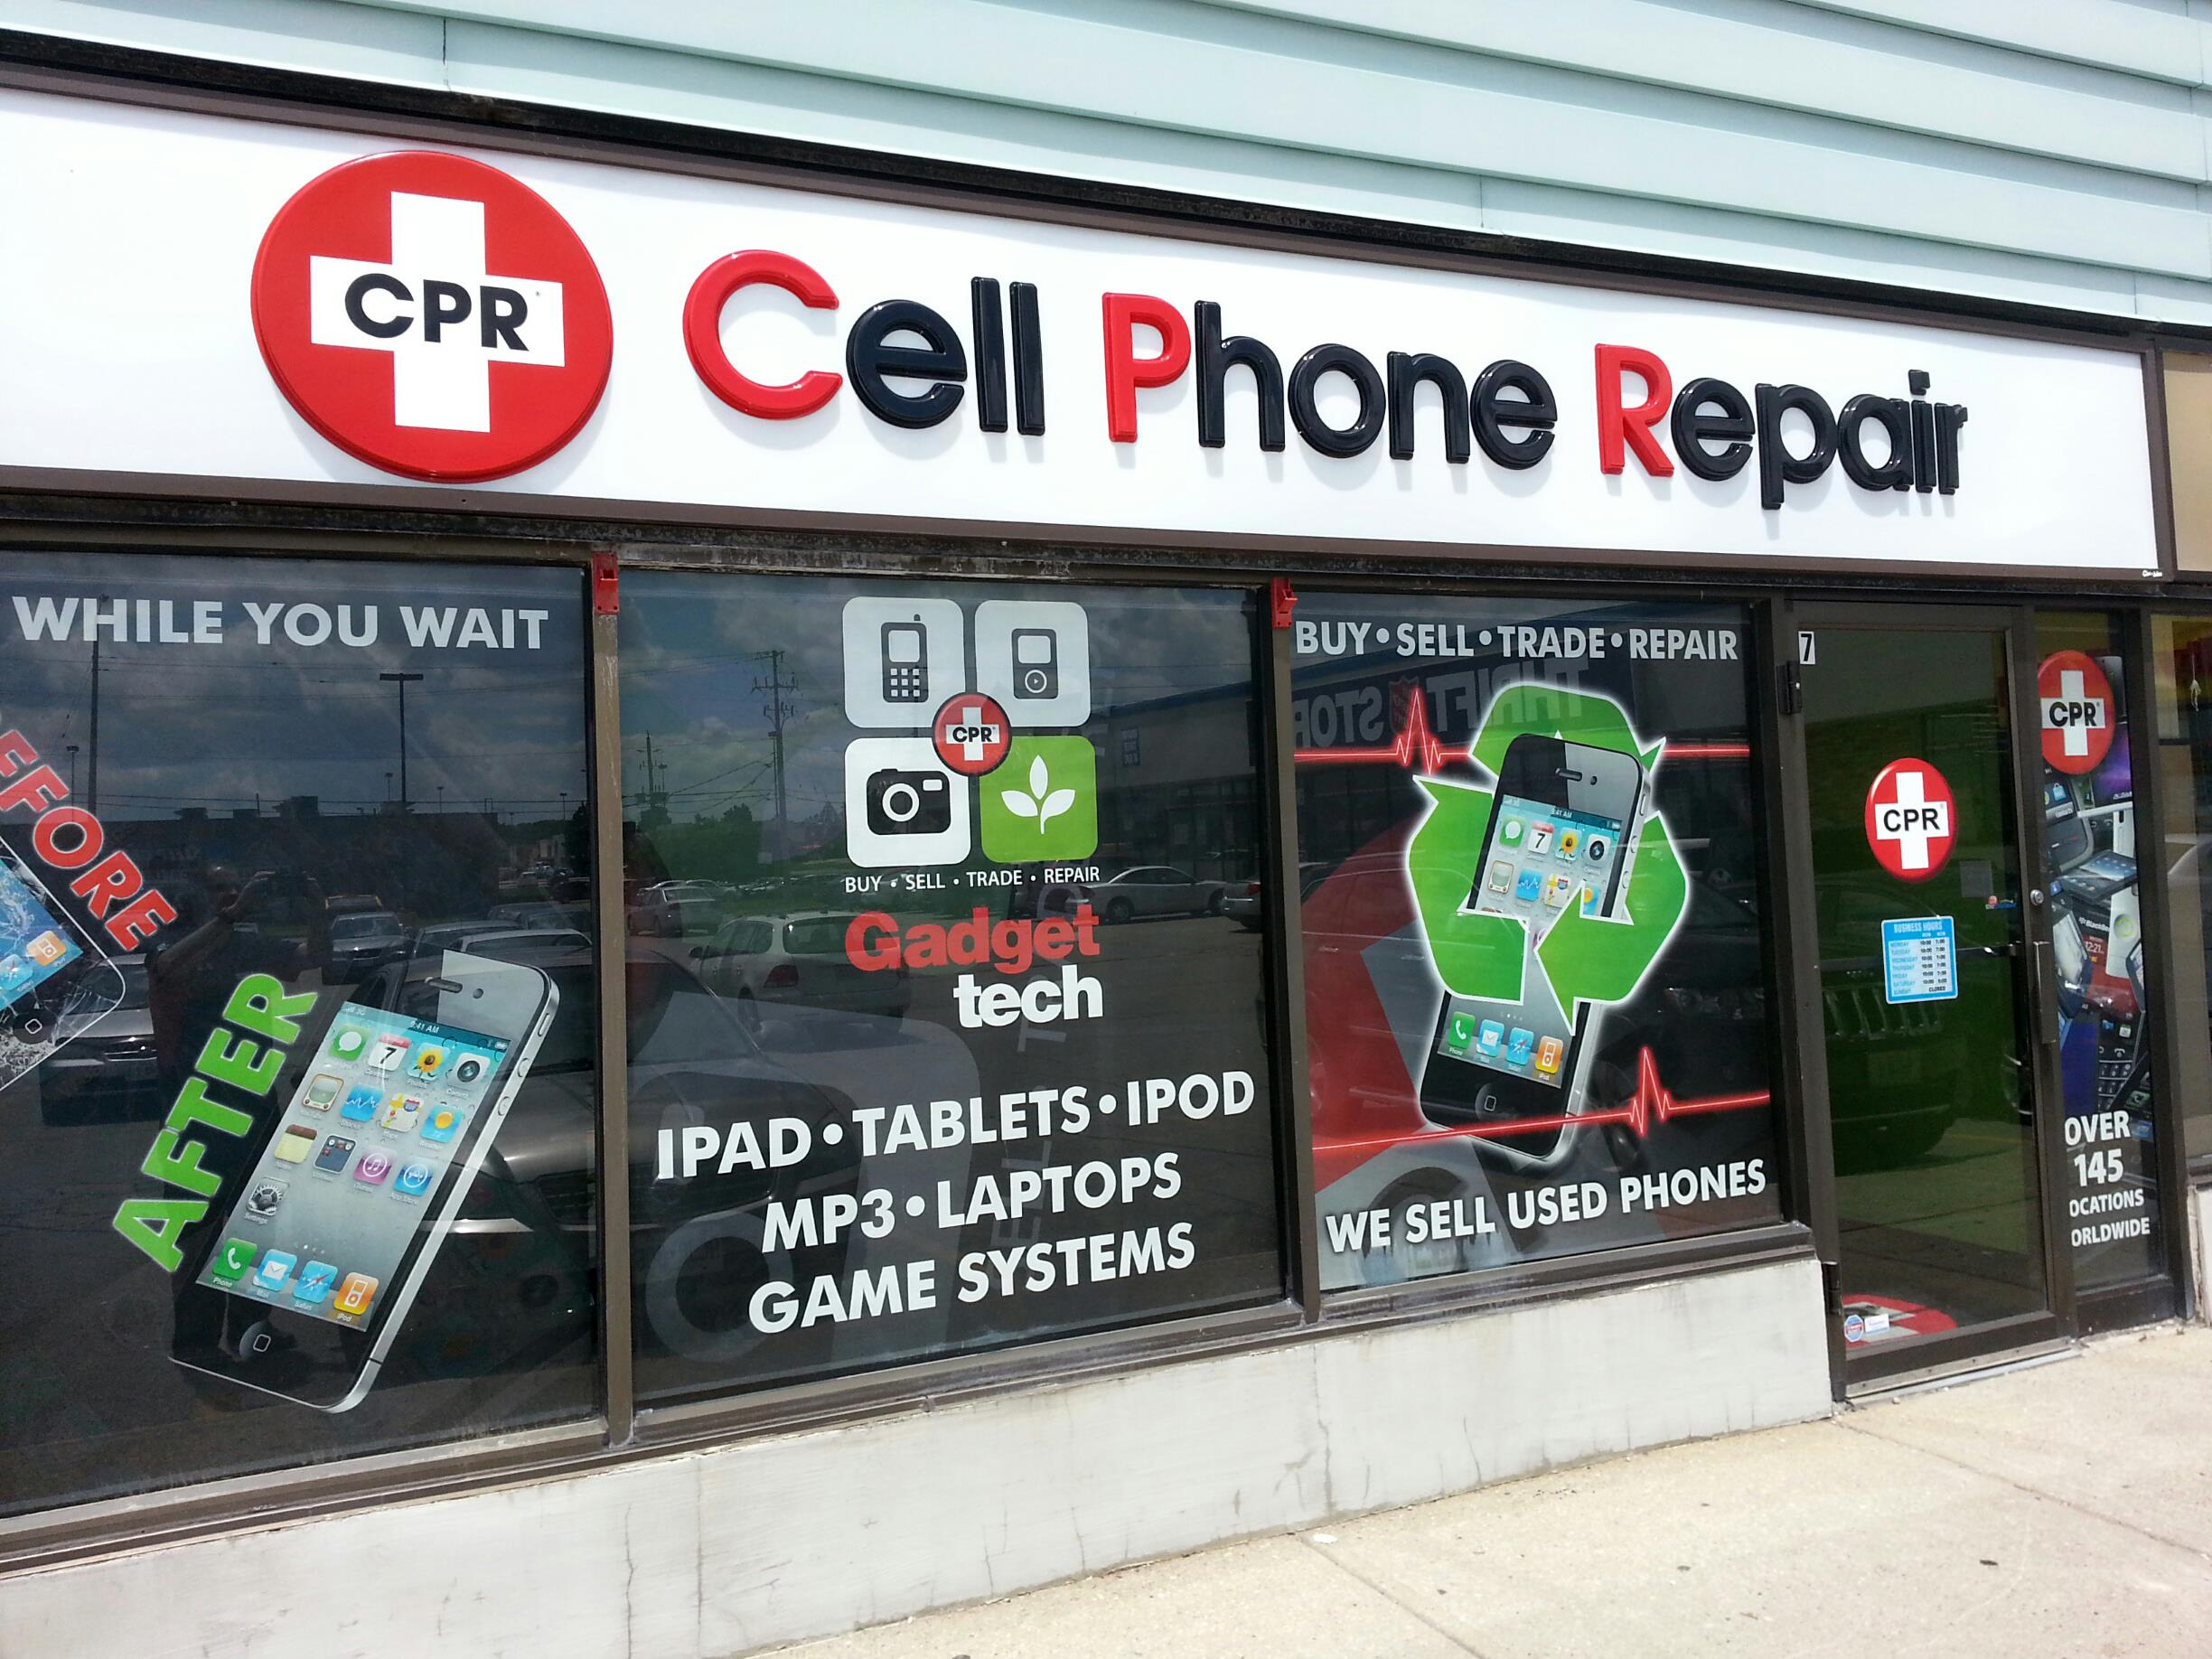 Cpr Cell Phone Repair Cambridge In Cambridge On